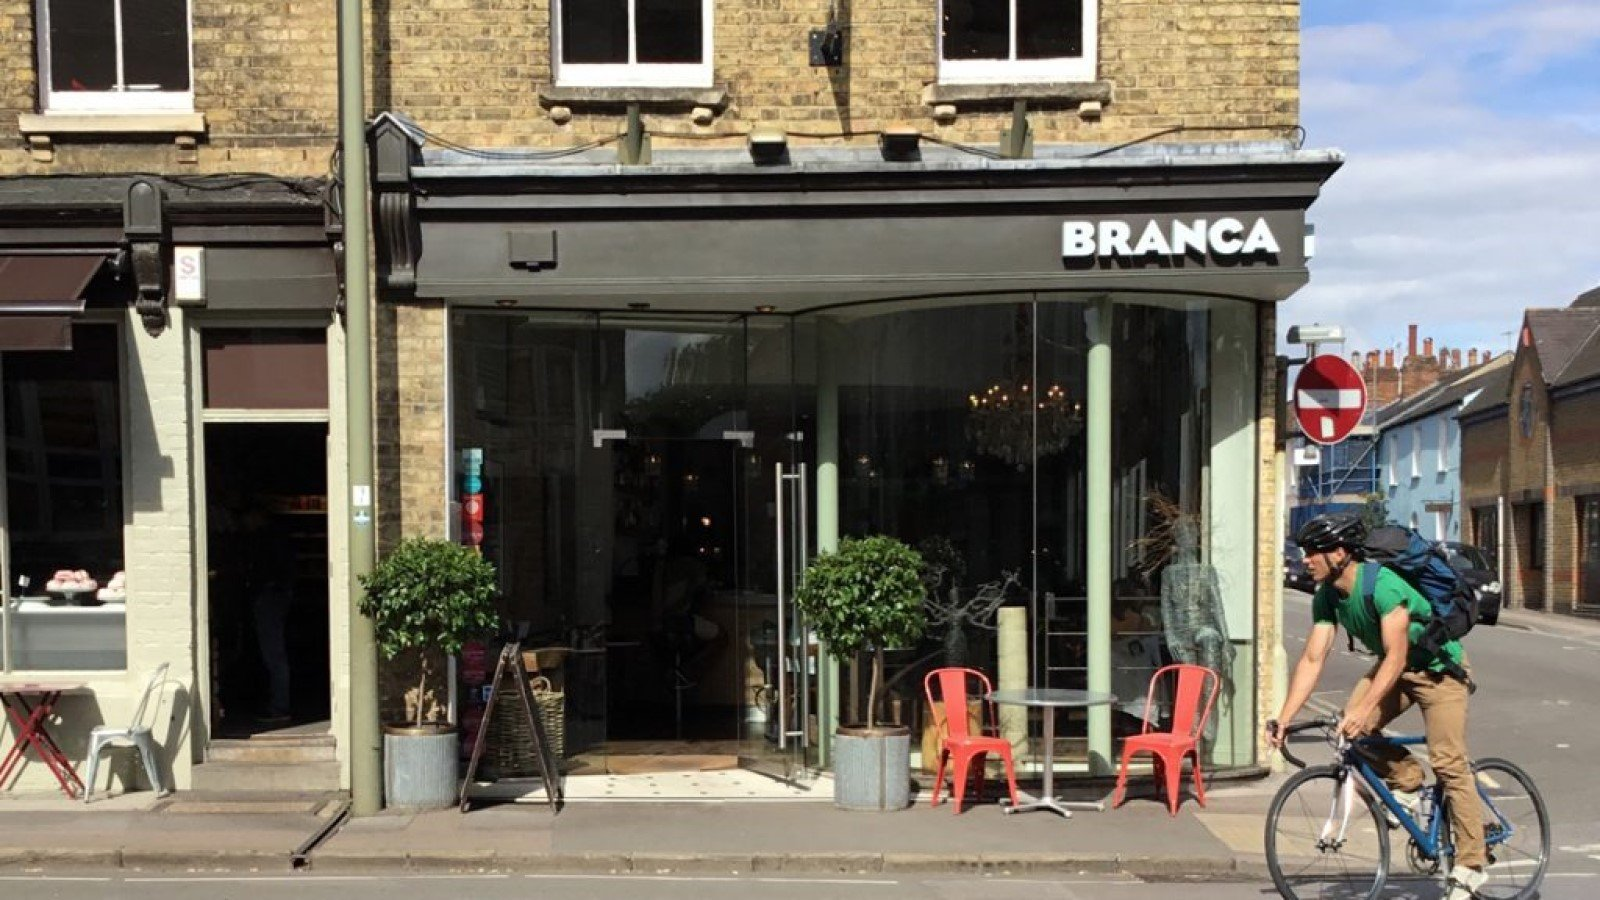 Branca Restaurant and Brasserie, Jericho, Oxford